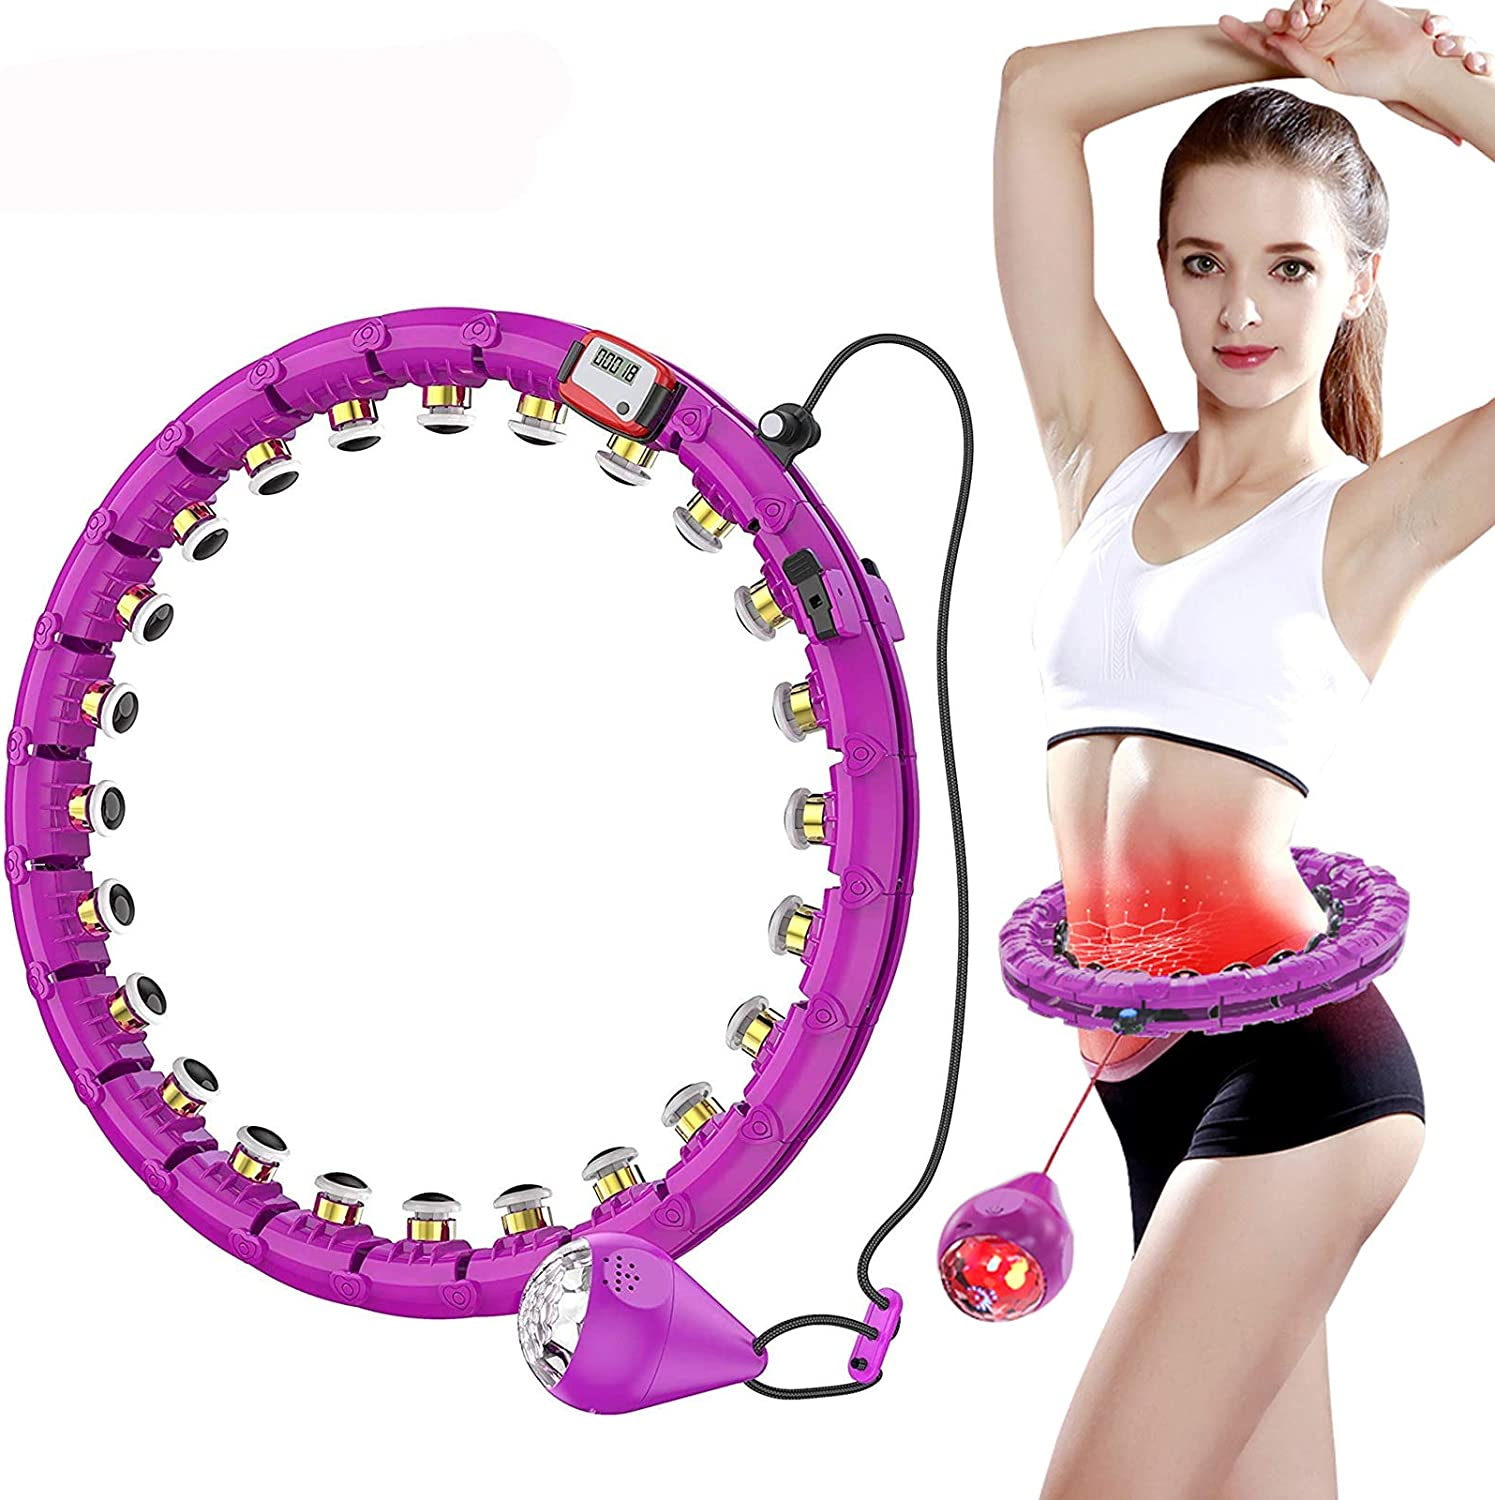 Year-end annual account MUZILIYAO Jacksonville Mall Weighted Exercise Hoop Light Gravi Folorful 360°LED